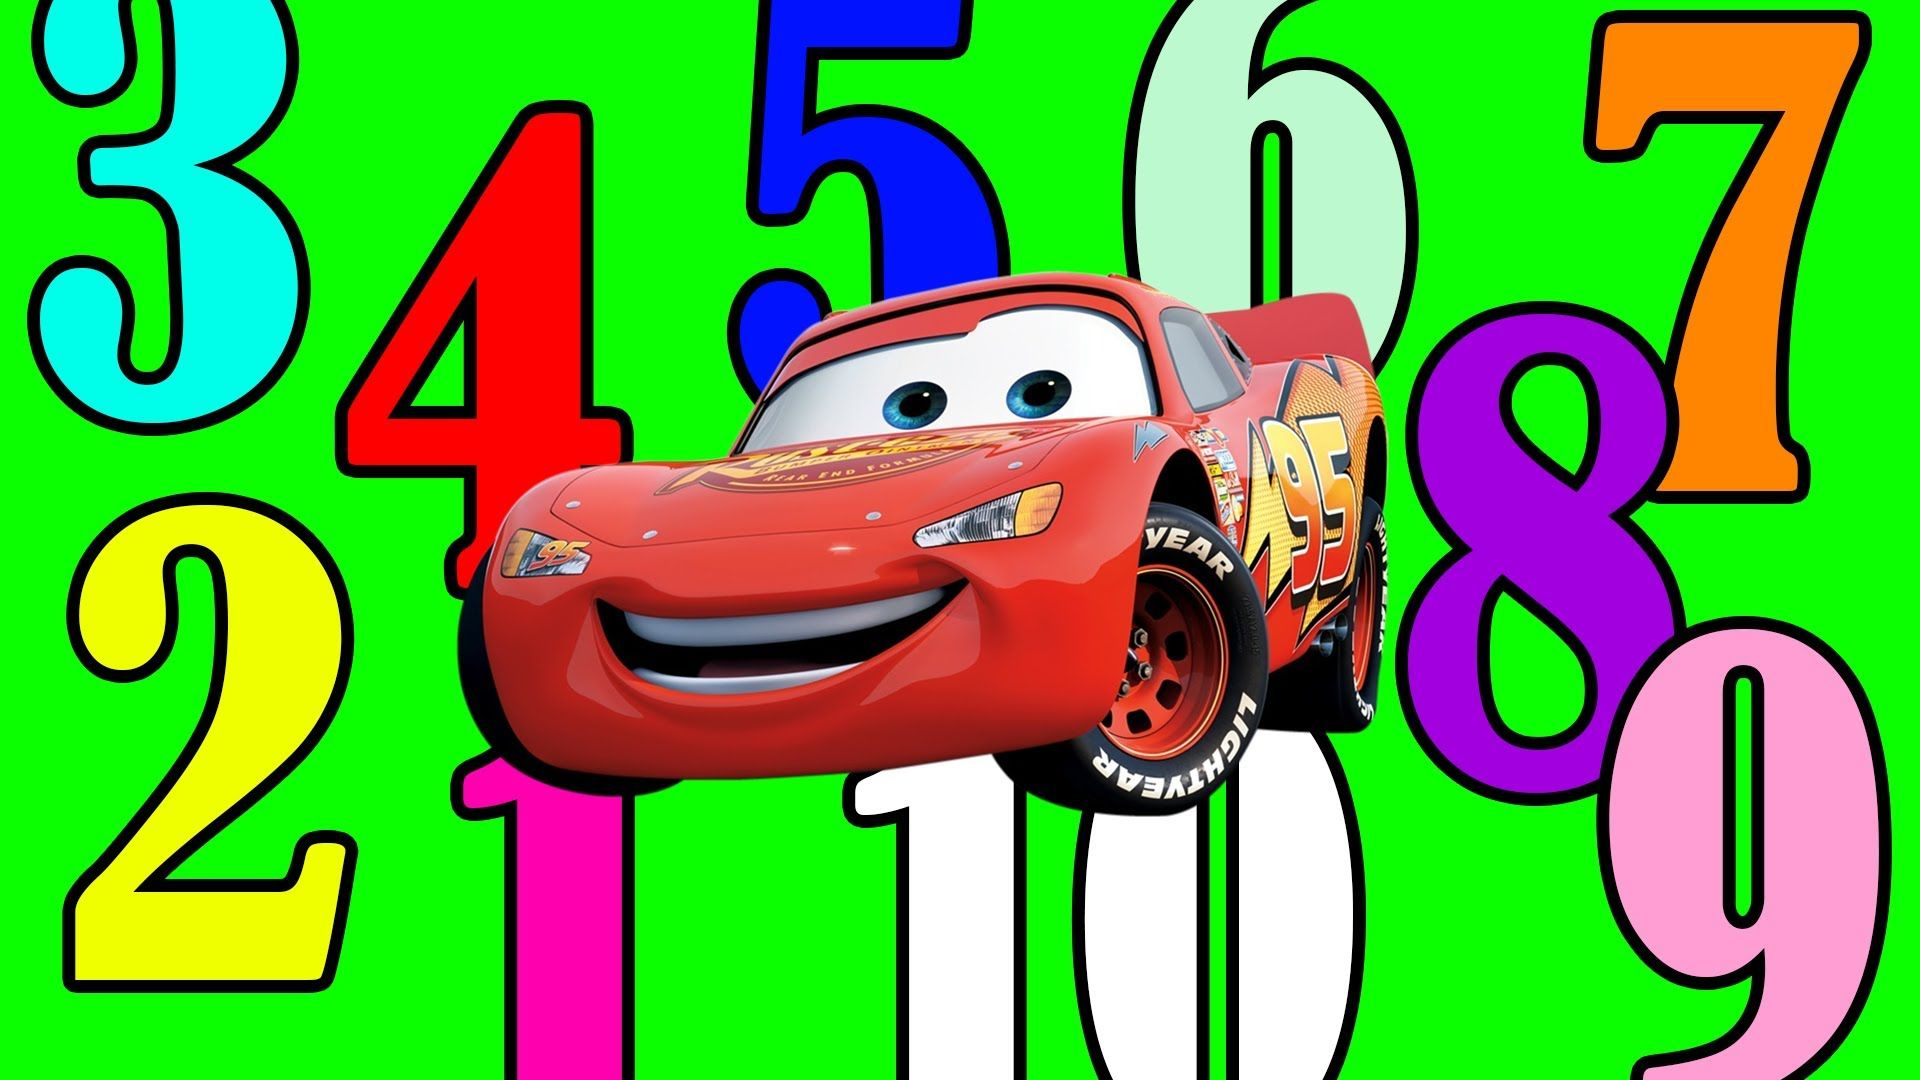 Counting To 10 With Disney Pixar Cars Lightning Mcqueen